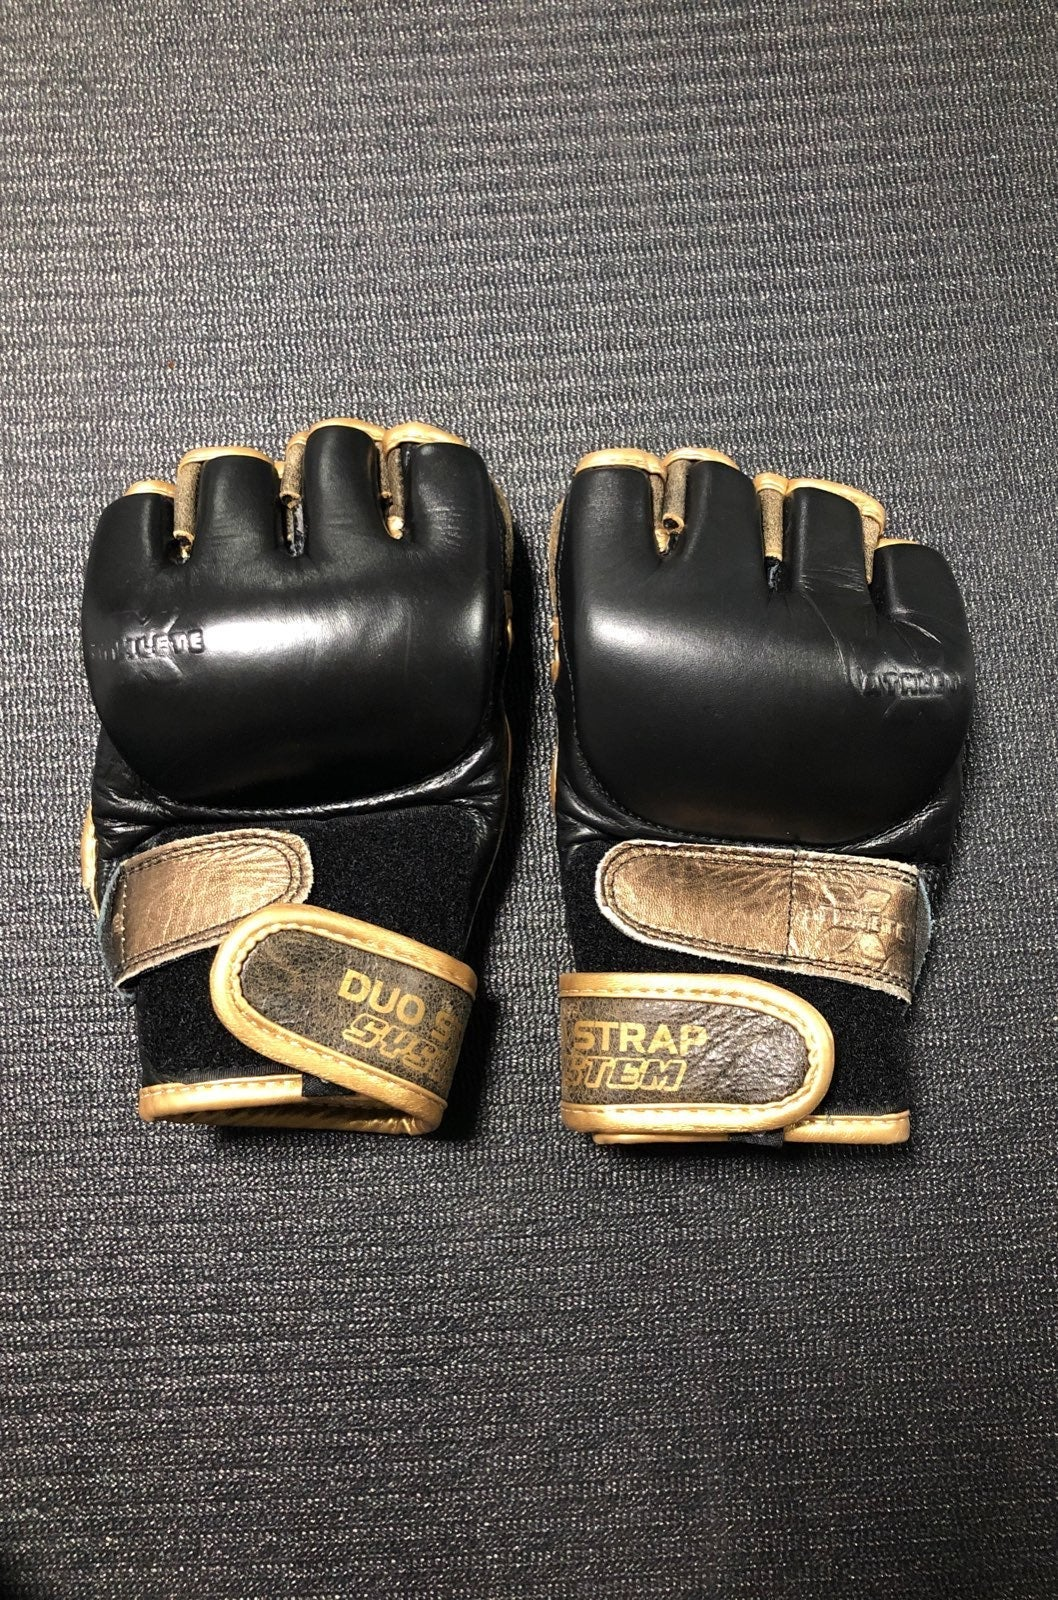 MMA Gloves - Small